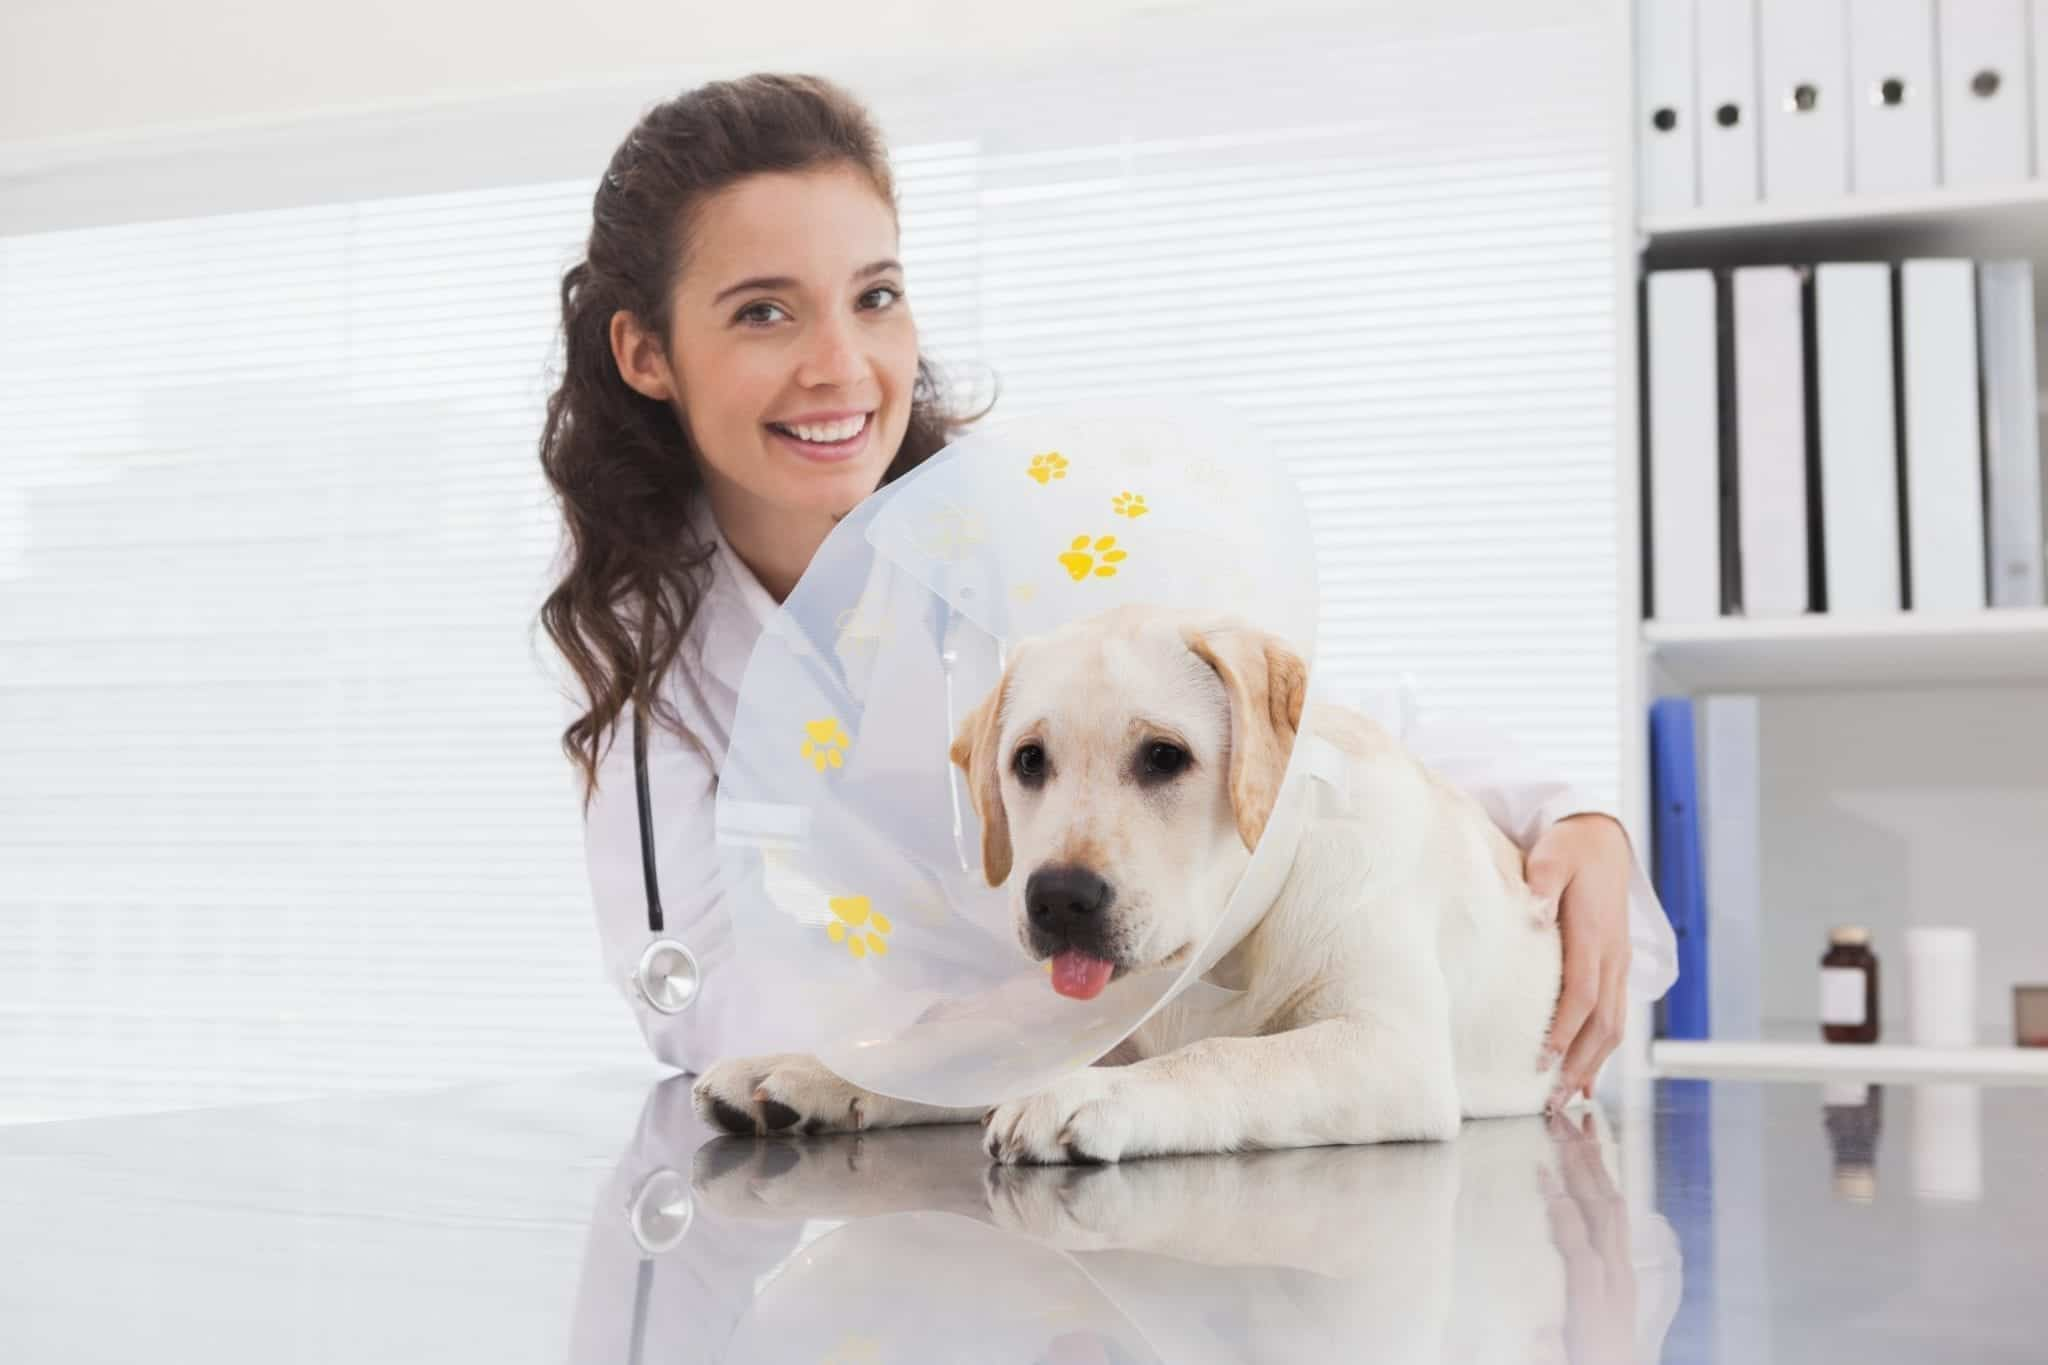 Should Your Pet Be Spayed Or Neutered?